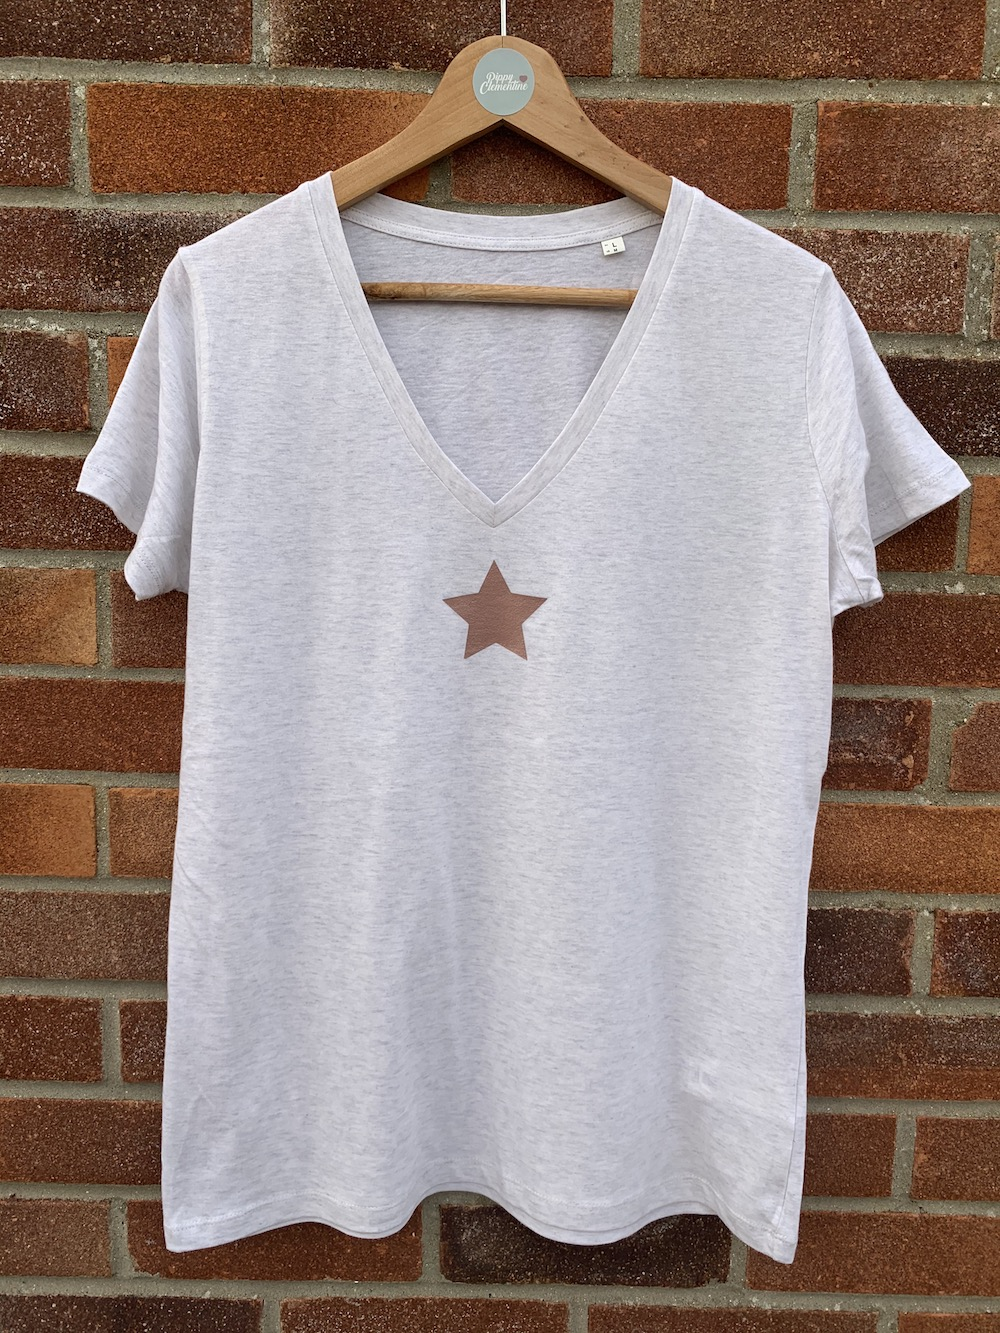 Star V Neck Classic Tshirt – Cream And Rose Gold